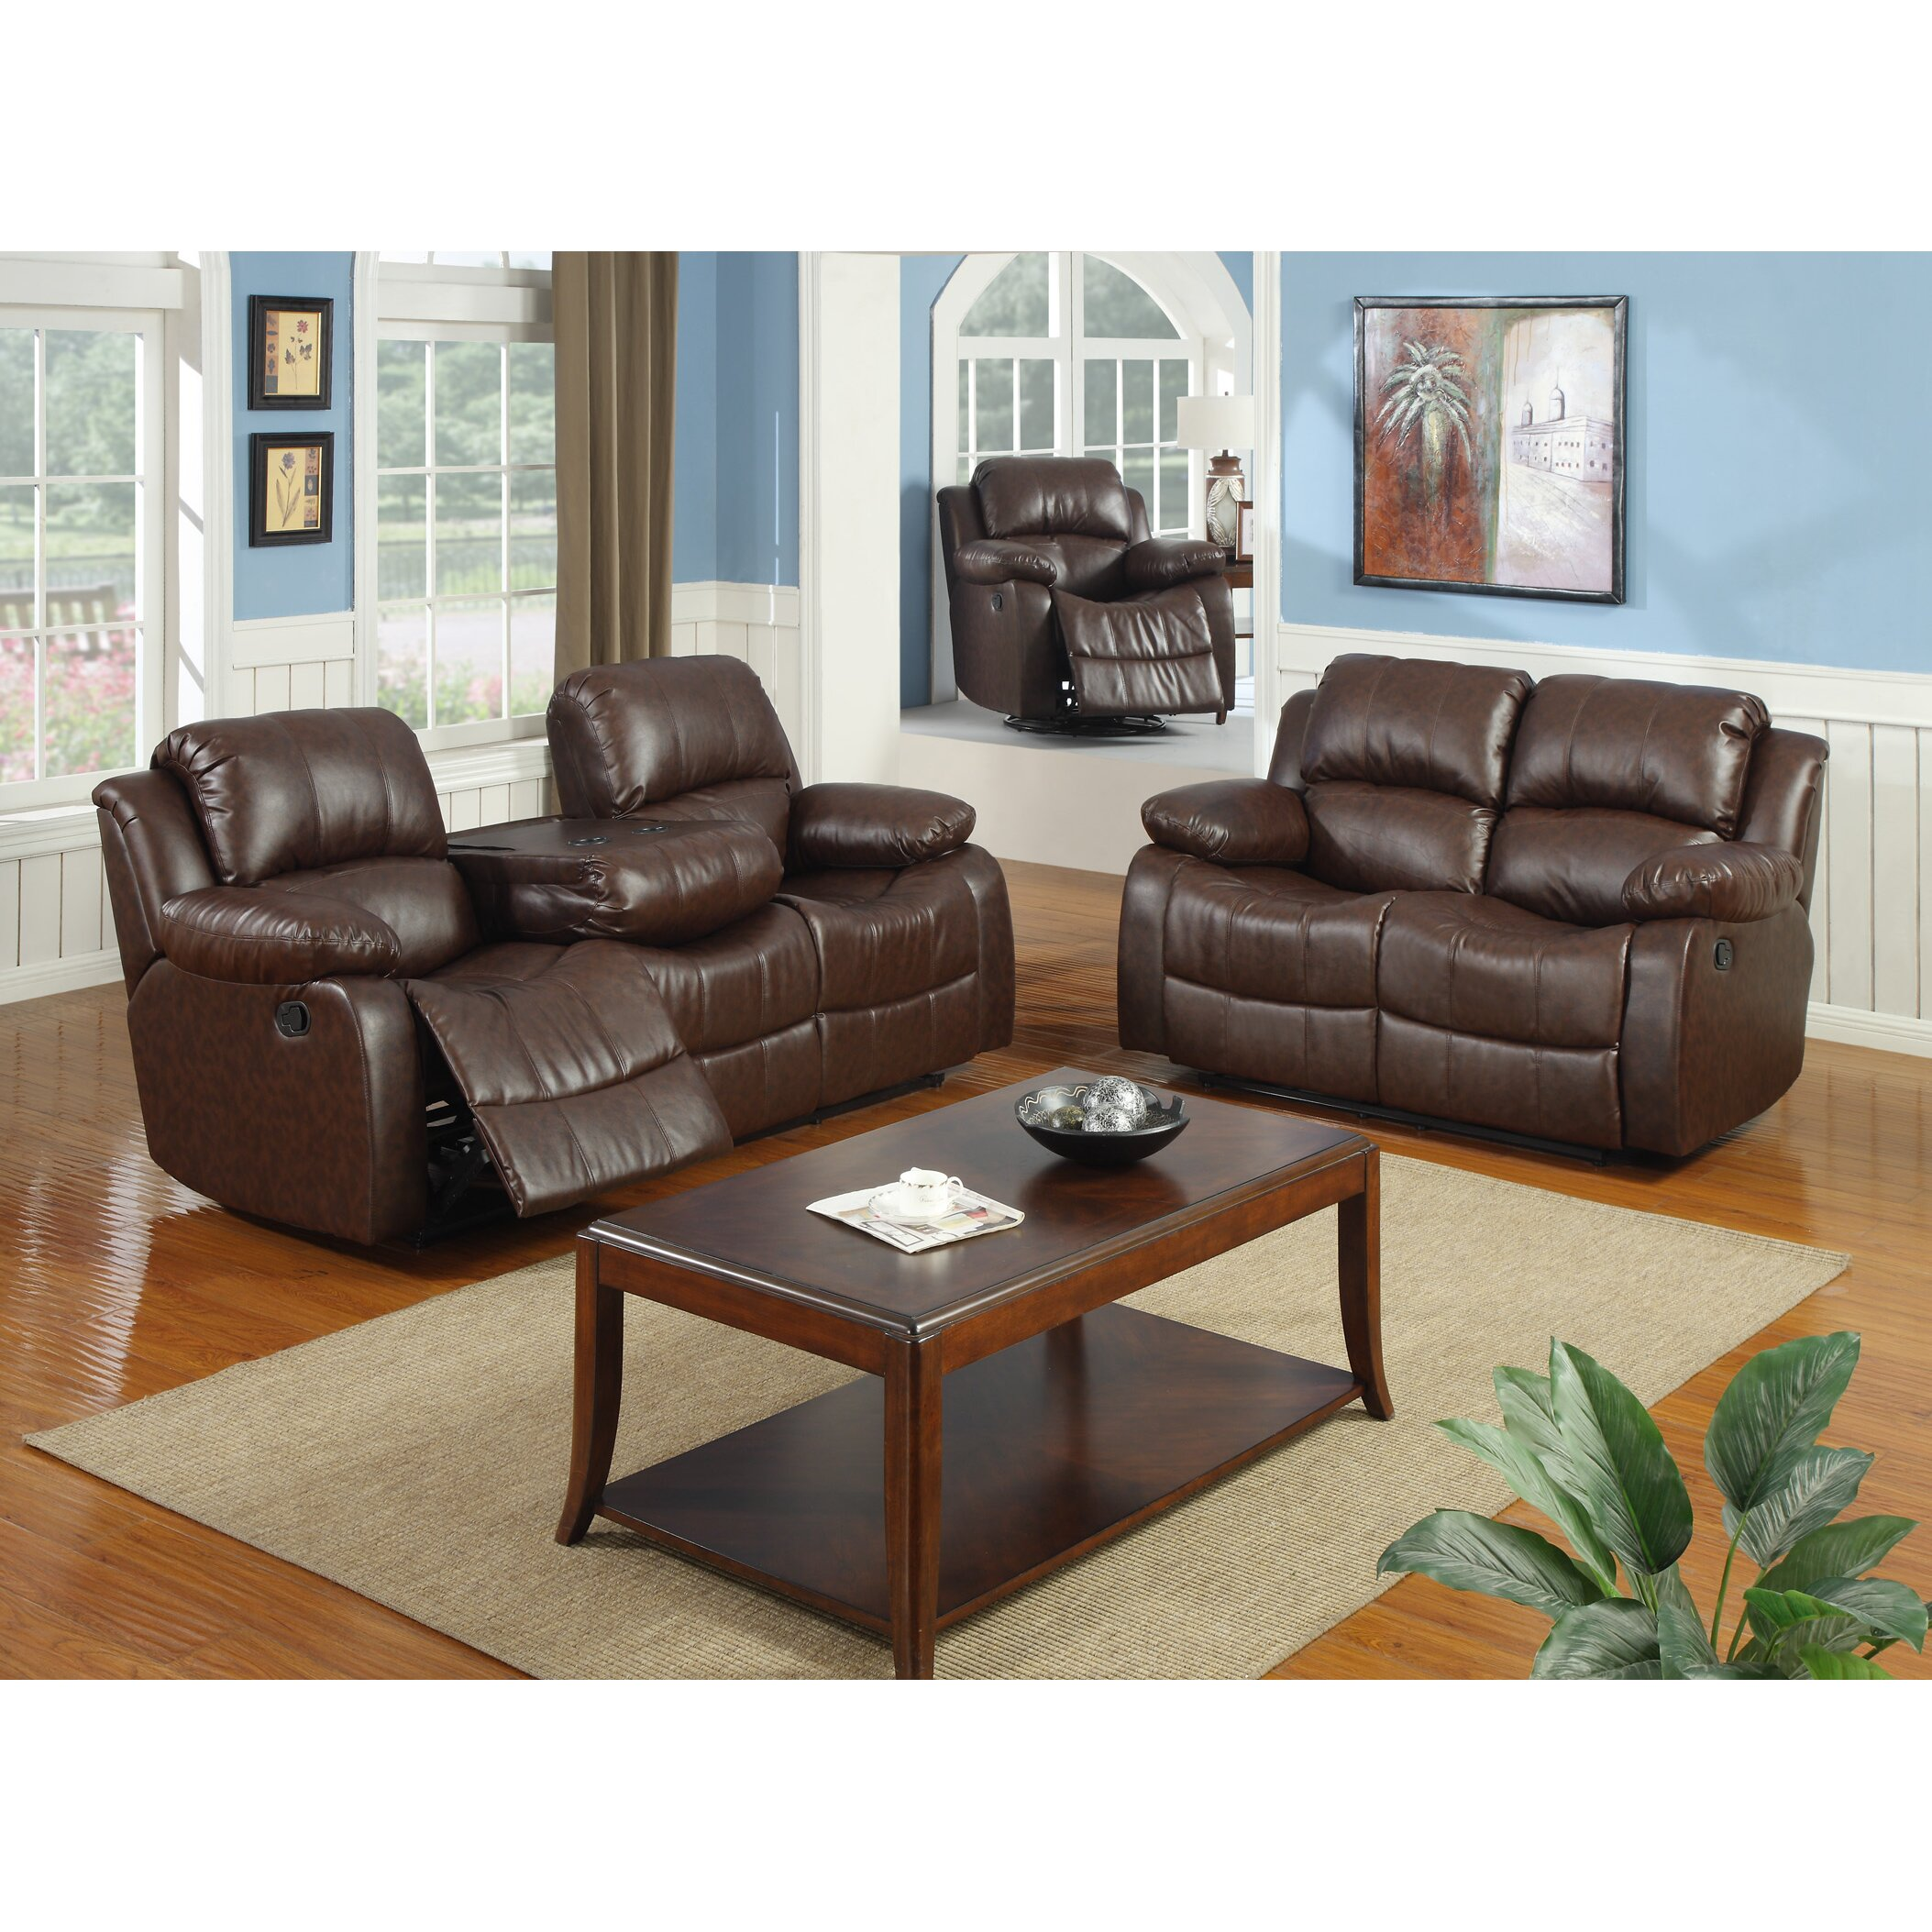 Best quality furniture bonded leather 3 piece recliner for 3 piece living room furniture